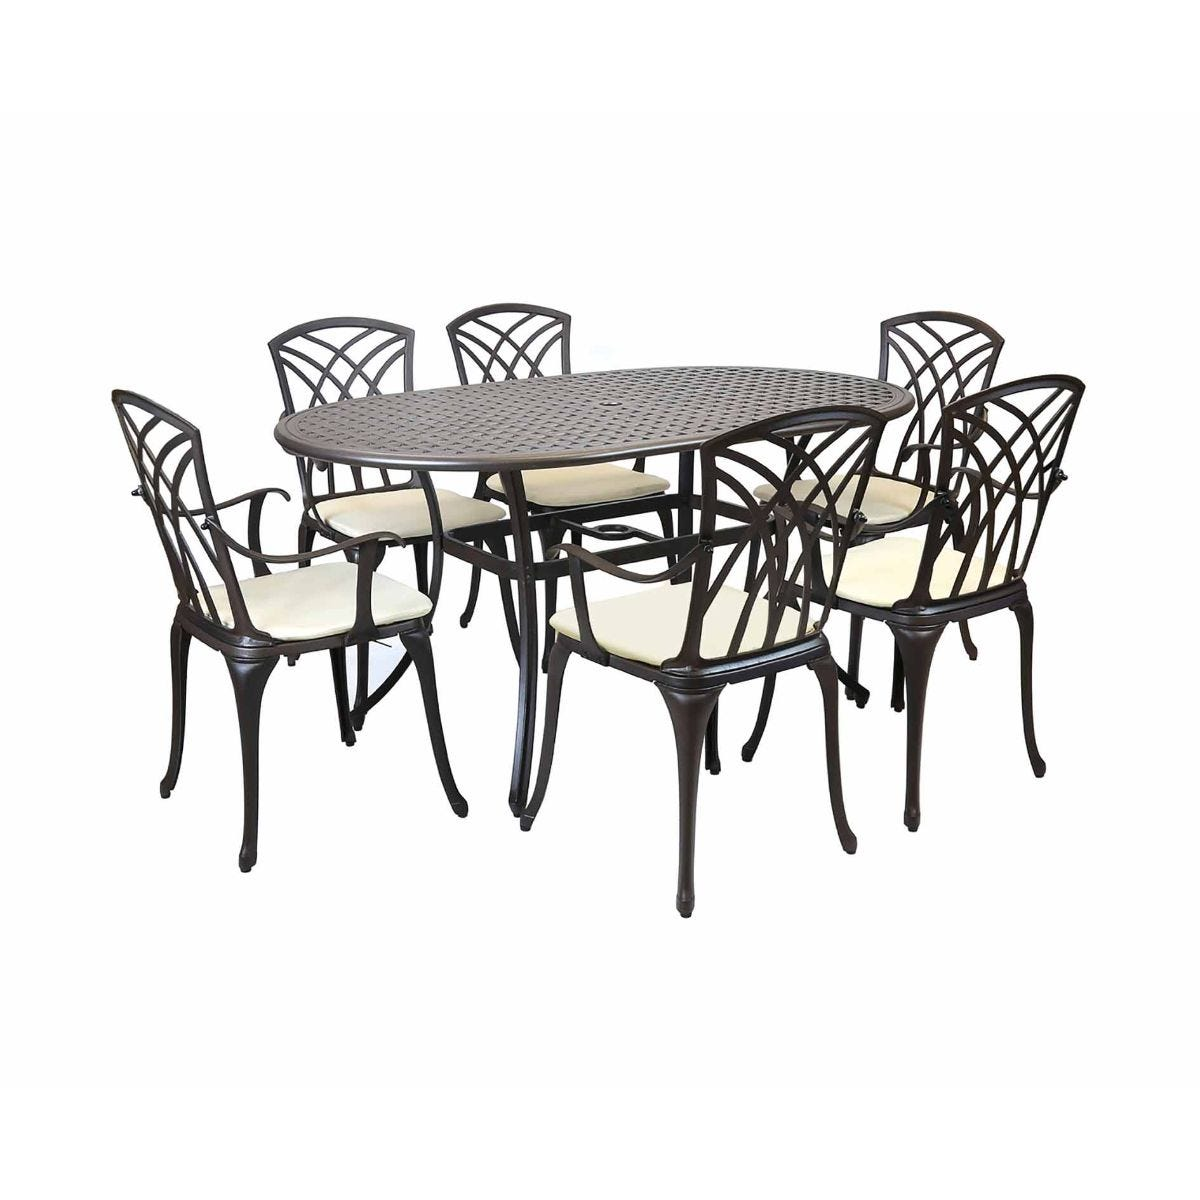 Charles Bentley Cast Aluminium Garden Dining Set 6 Seater, Dark Brown